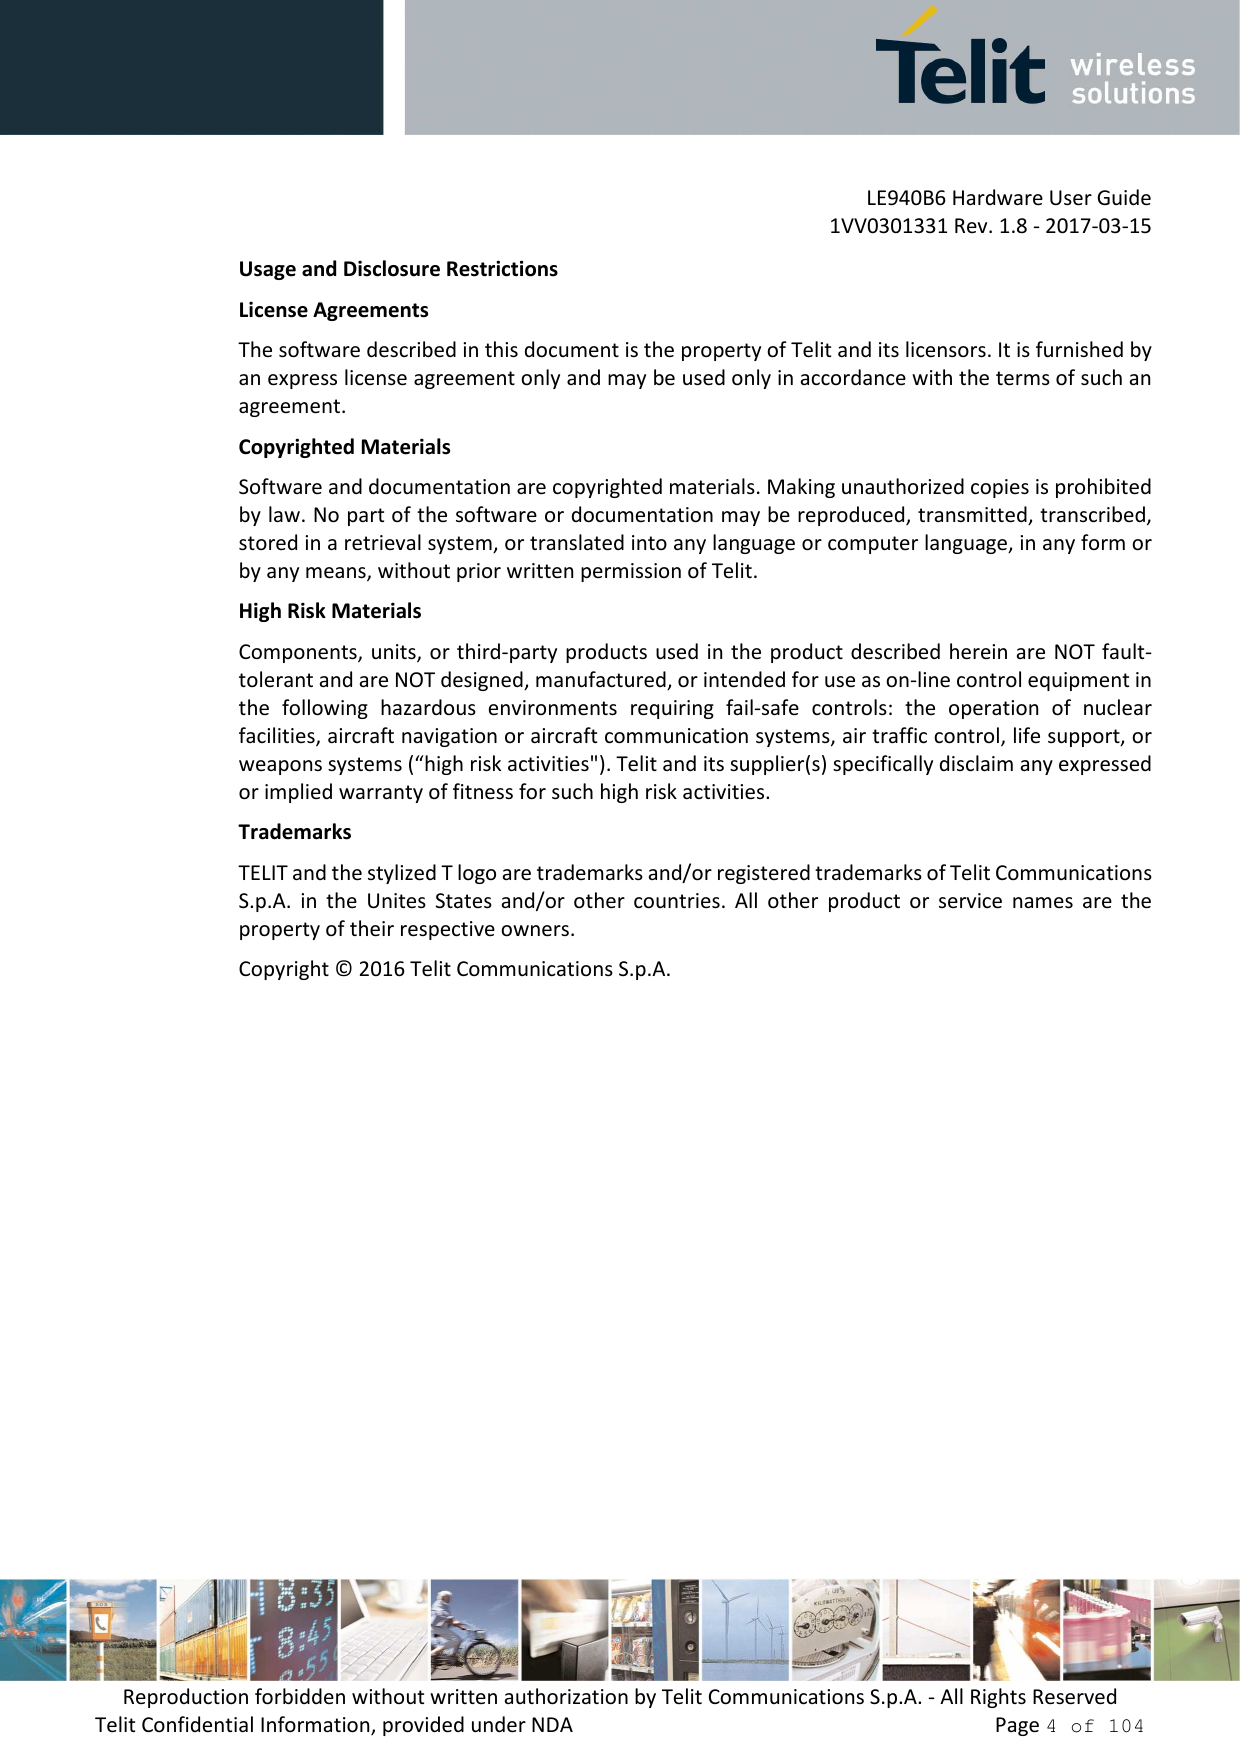 """LE940B6 Hardware User Guide     1VV0301331 Rev. 1.8 - 2017-03-15 Reproduction forbidden without written authorization by Telit Communications S.p.A. - All Rights Reserved Telit Confidential Information, provided under NDA                 Page 4 of 104 Usage and Disclosure Restrictions License Agreements The software described in this document is the property of Telit and its licensors. It is furnished by an express license agreement only and may be used only in accordance with the terms of such an agreement. Copyrighted Materials Software and documentation are copyrighted materials. Making unauthorized copies is prohibited by law. No part of the software or documentation may be reproduced, transmitted, transcribed, stored in a retrieval system, or translated into any language or computer language, in any form or by any means, without prior written permission of Telit. High Risk Materials Components, units, or third-party products used in the product described herein are NOT fault-tolerant and are NOT designed, manufactured, or intended for use as on-line control equipment in the  following  hazardous  environments  requiring  fail-safe  controls:  the  operation  of  nuclear facilities, aircraft navigation or aircraft communication systems, air traffic control, life support, or weapons systems (""""high risk activities""""). Telit and its supplier(s) specifically disclaim any expressed or implied warranty of fitness for such high risk activities. Trademarks TELIT and the stylized T logo are trademarks and/or registered trademarks of Telit Communications S.p.A.  in  the  Unites  States  and/or  other  countries.  All  other  product  or  service  names  are  the property of their respective owners. Copyright © 2016 Telit Communications S.p.A."""